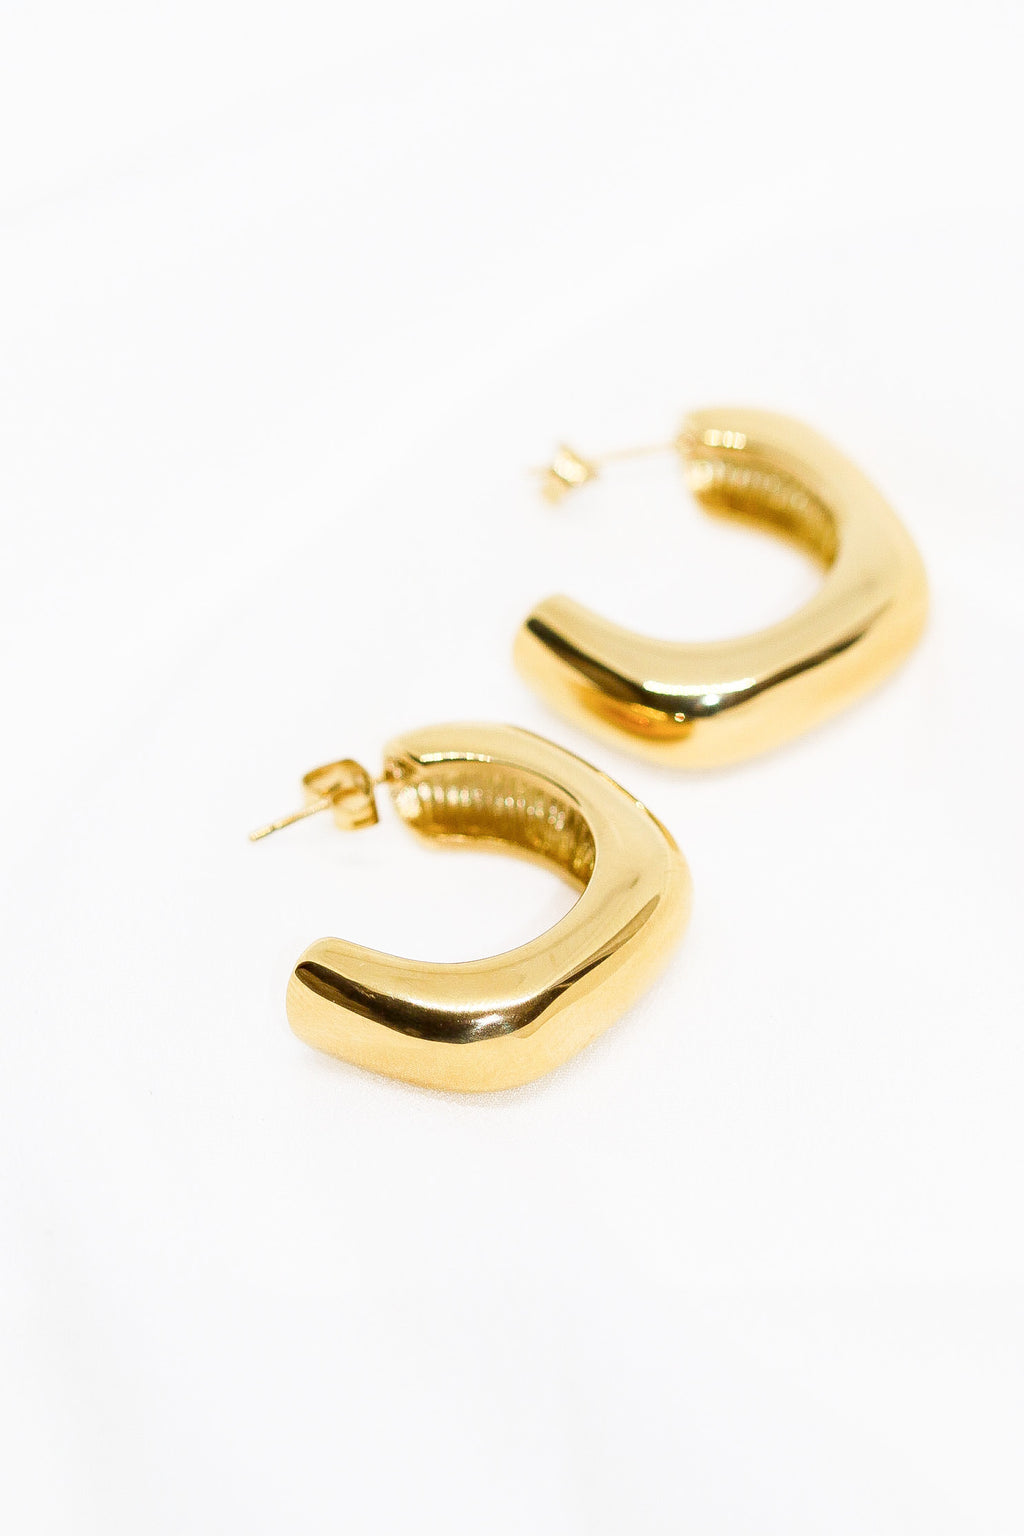 SQUARE LUXE HOOPS - Taimana Boutique